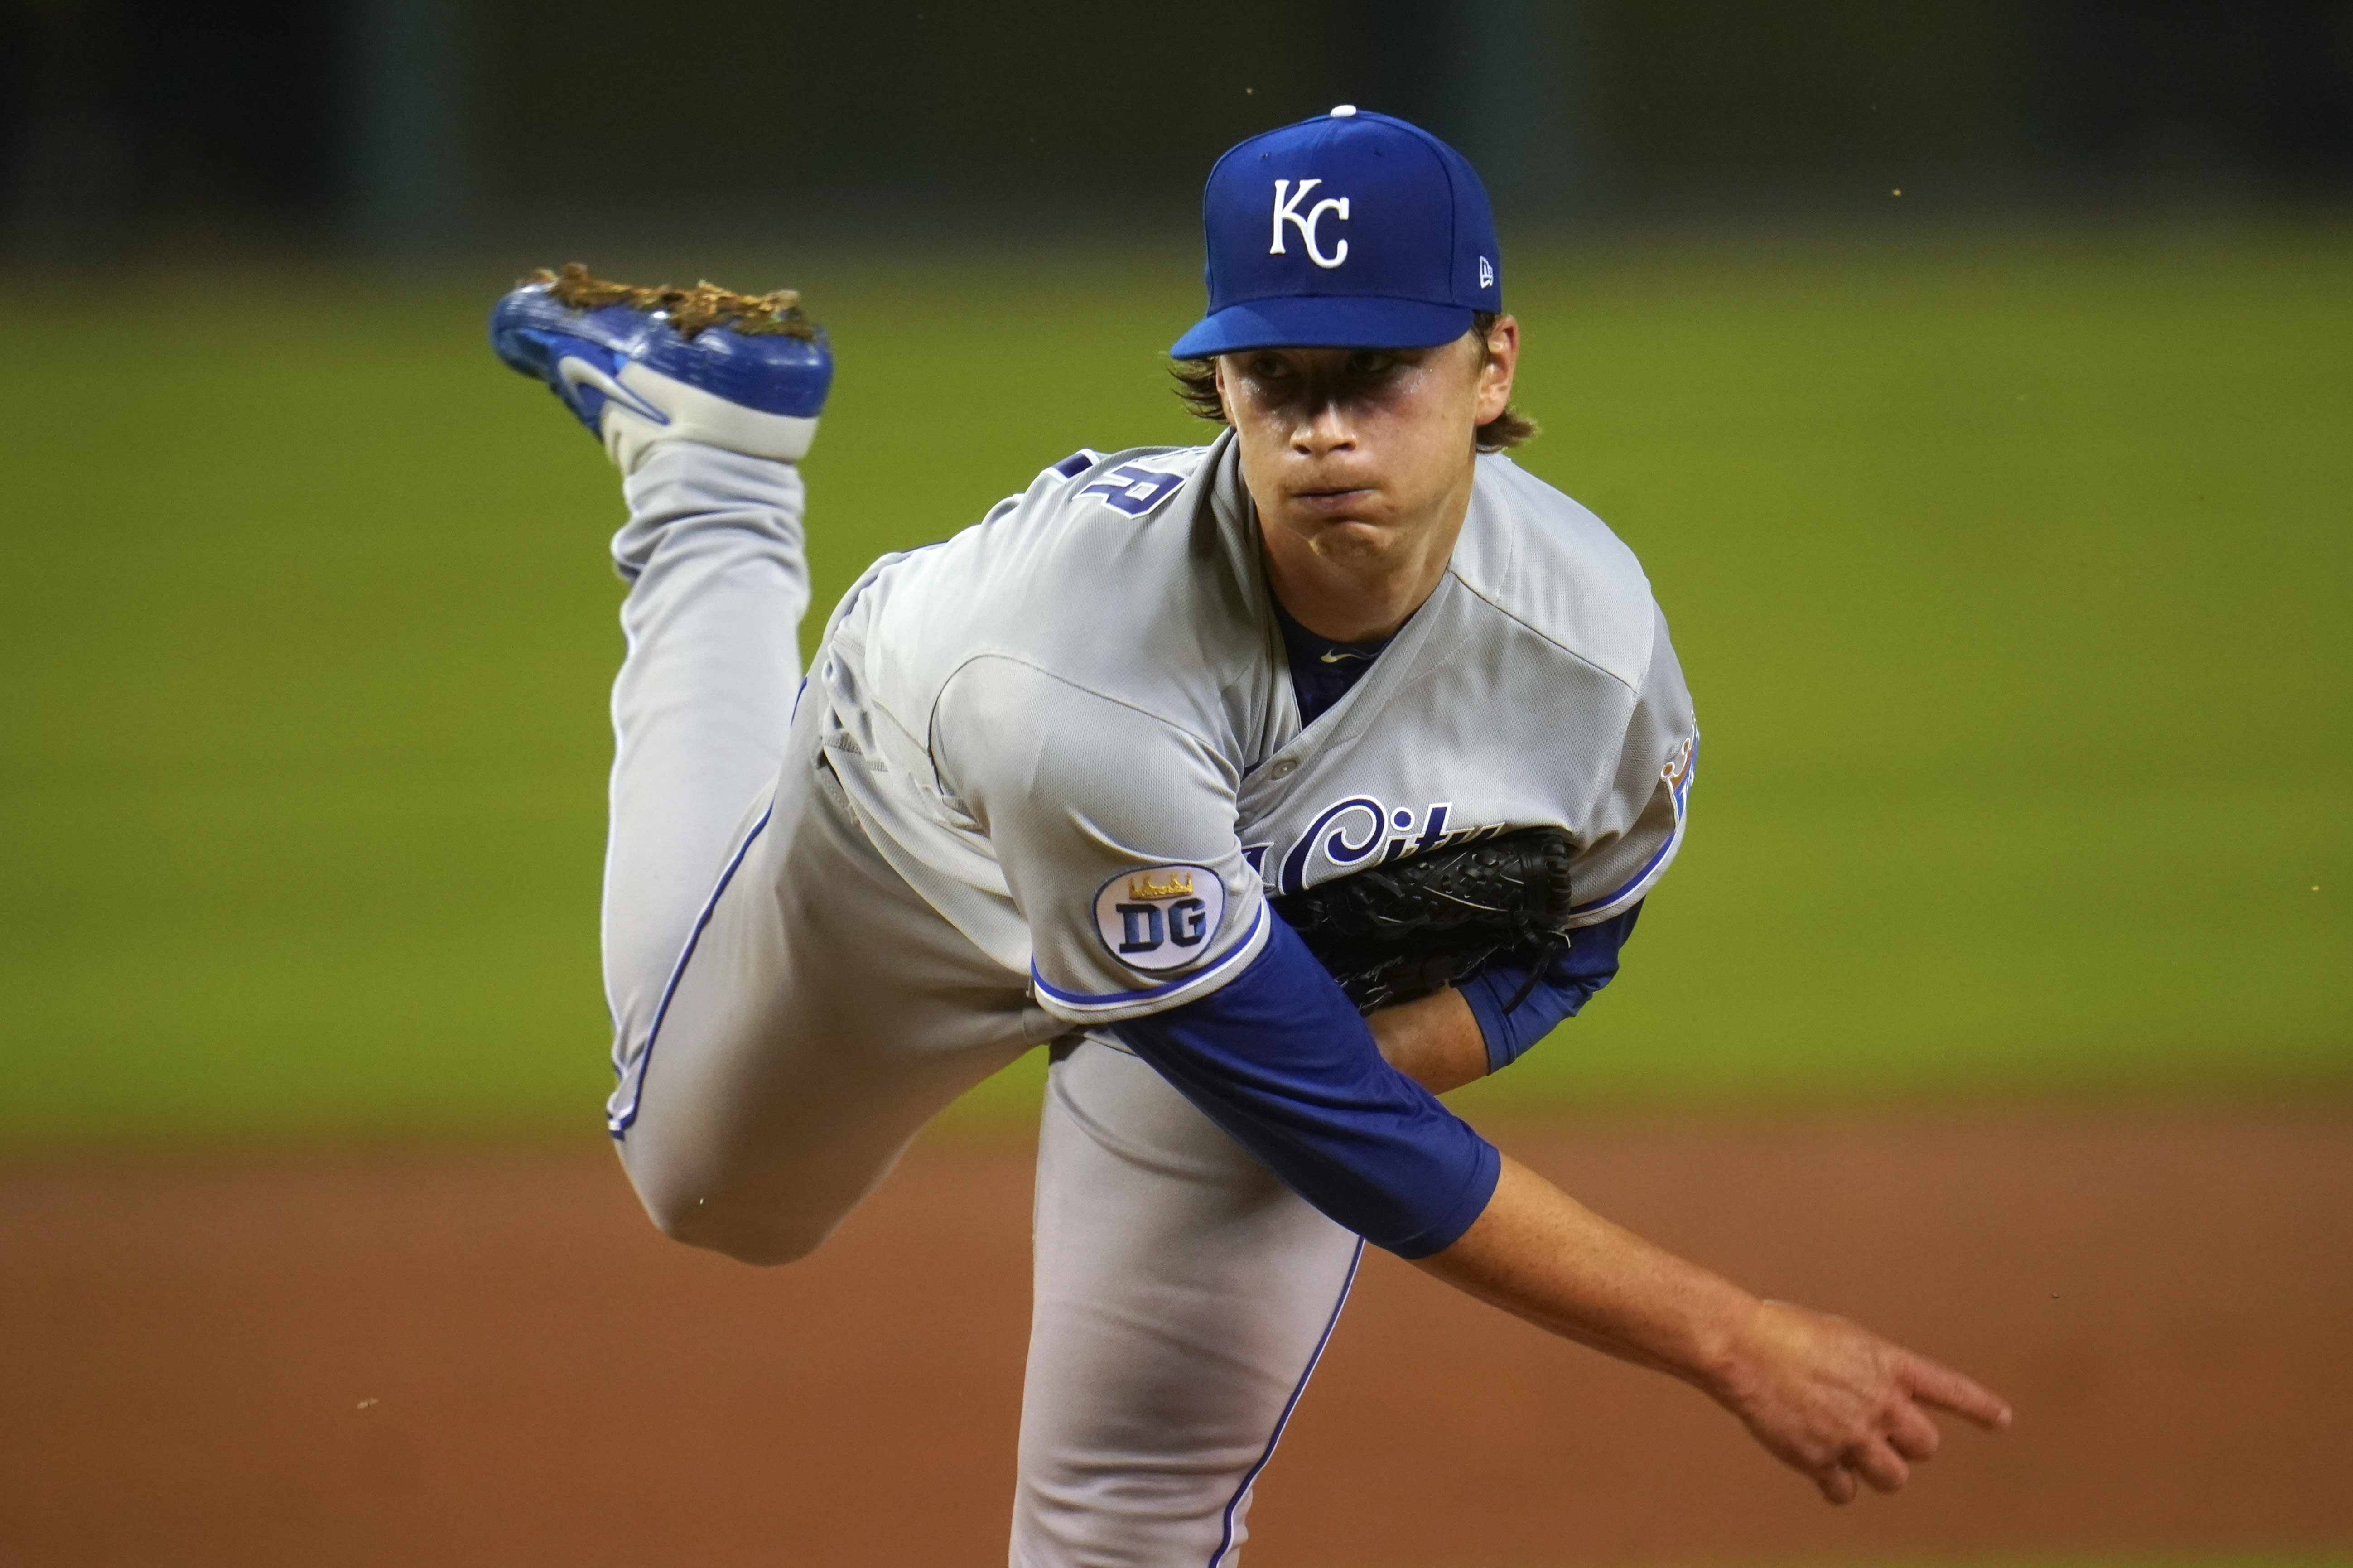 Kansas City Royals pitcher Brady Singer throws against the Detroit Tigers in the fifth inning of a baseball game in Detroit, Wednesday, Sept. 16, 2020. (AP Photo/Paul Sancya)